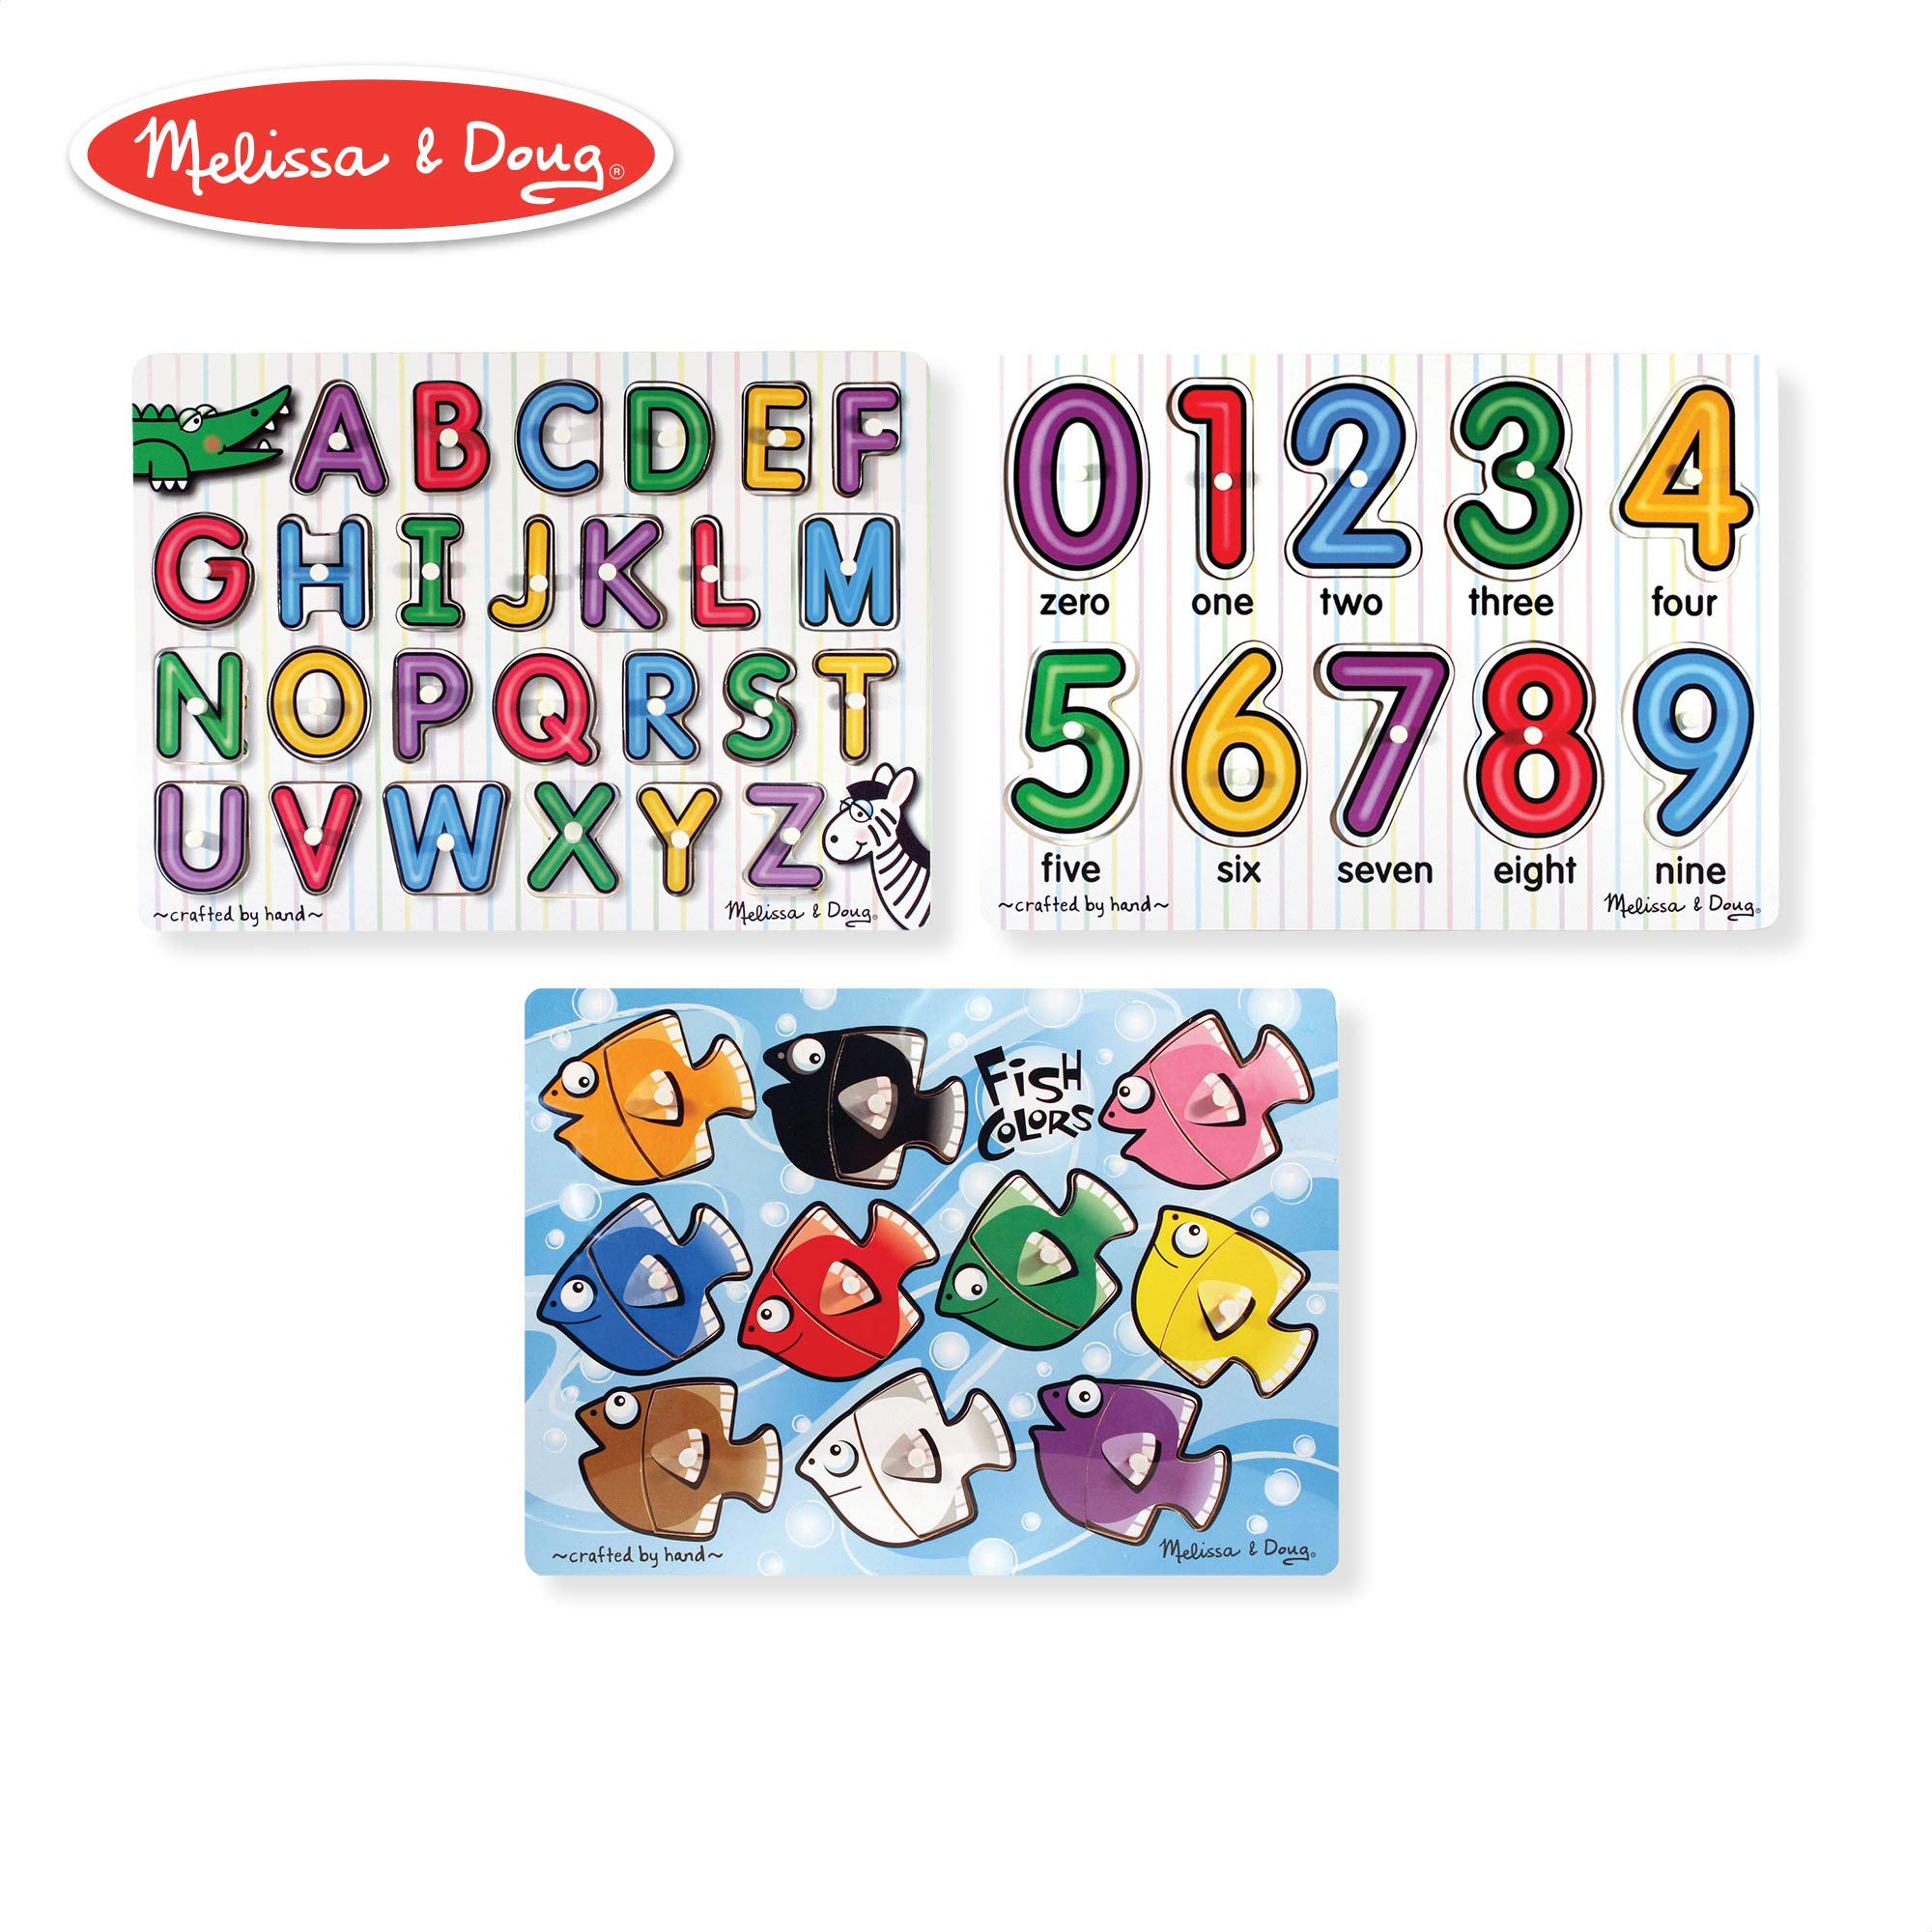 Melissa & Doug Classic Wooden Peg Puzzles, See-Inside Alphabet & Numbers, and Fish Mix & Match Colors, 3-Pack by Melissa & Doug